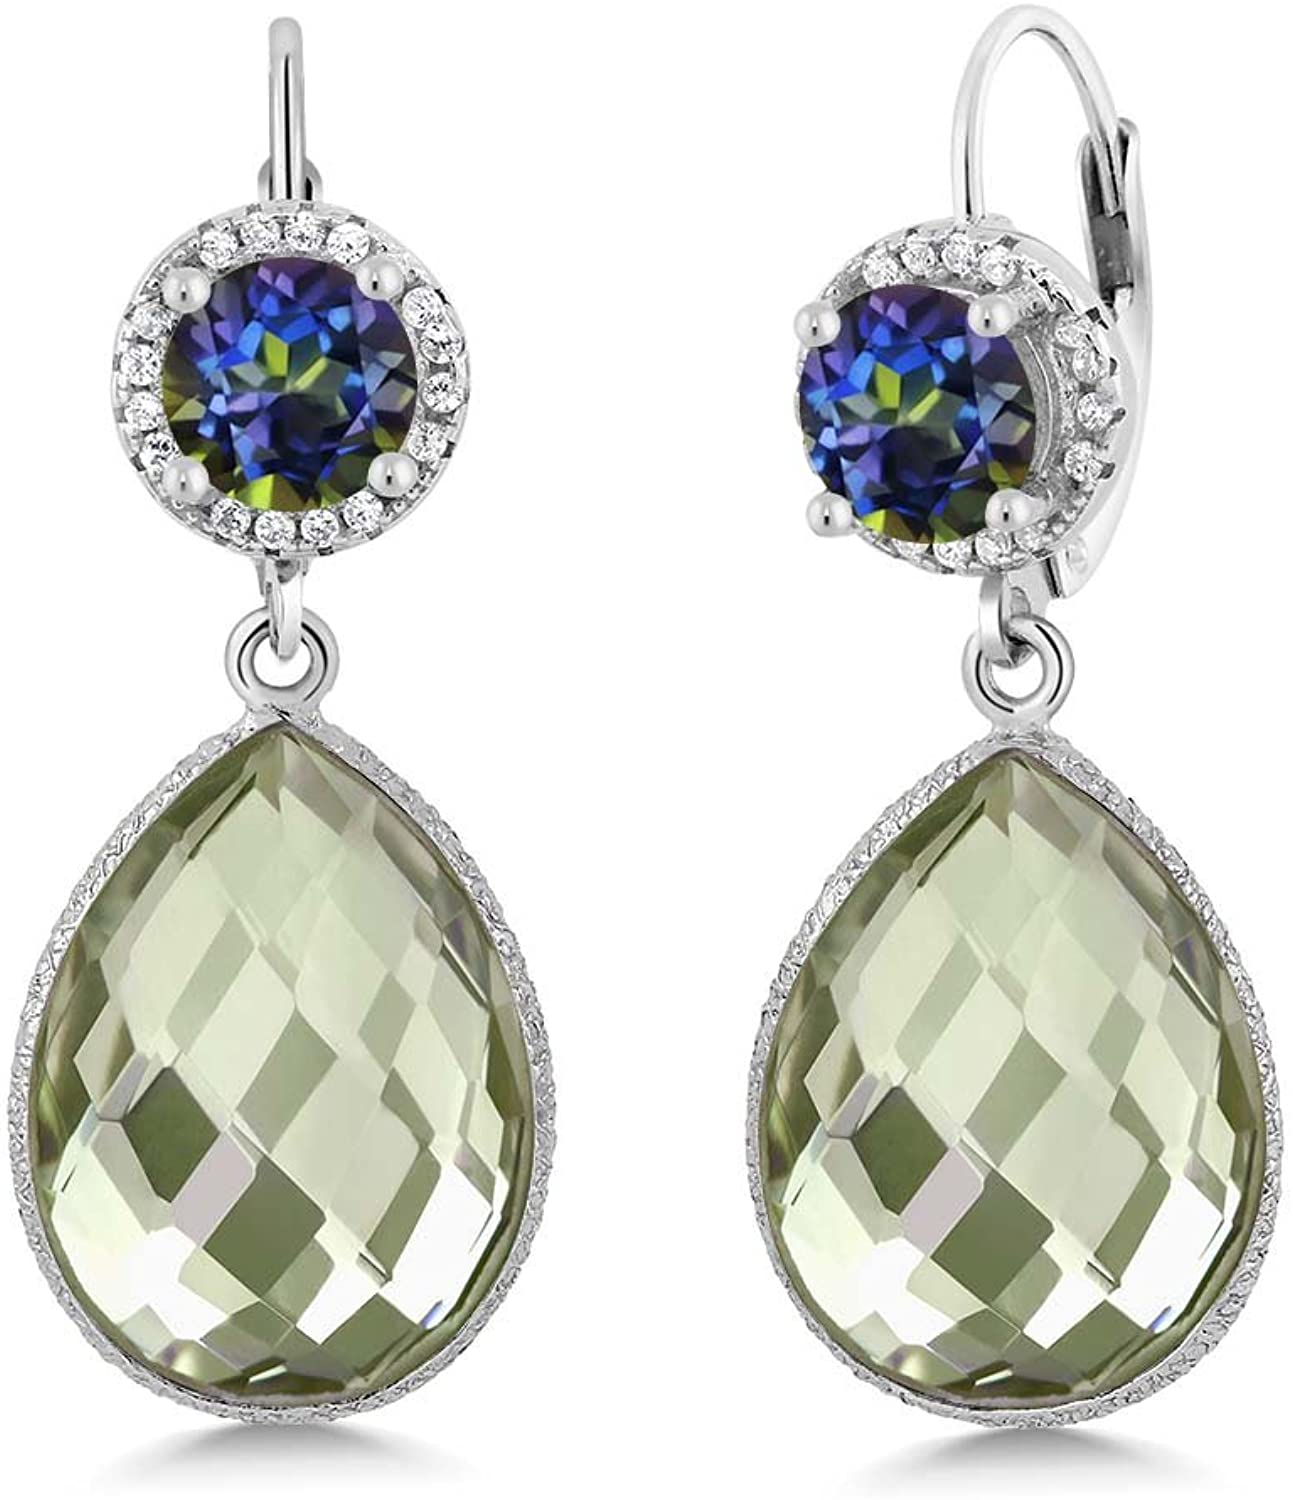 2.00 Ct Round bluee Mystic Topaz Pear Amethyst 925 Sterling Silver Earrings